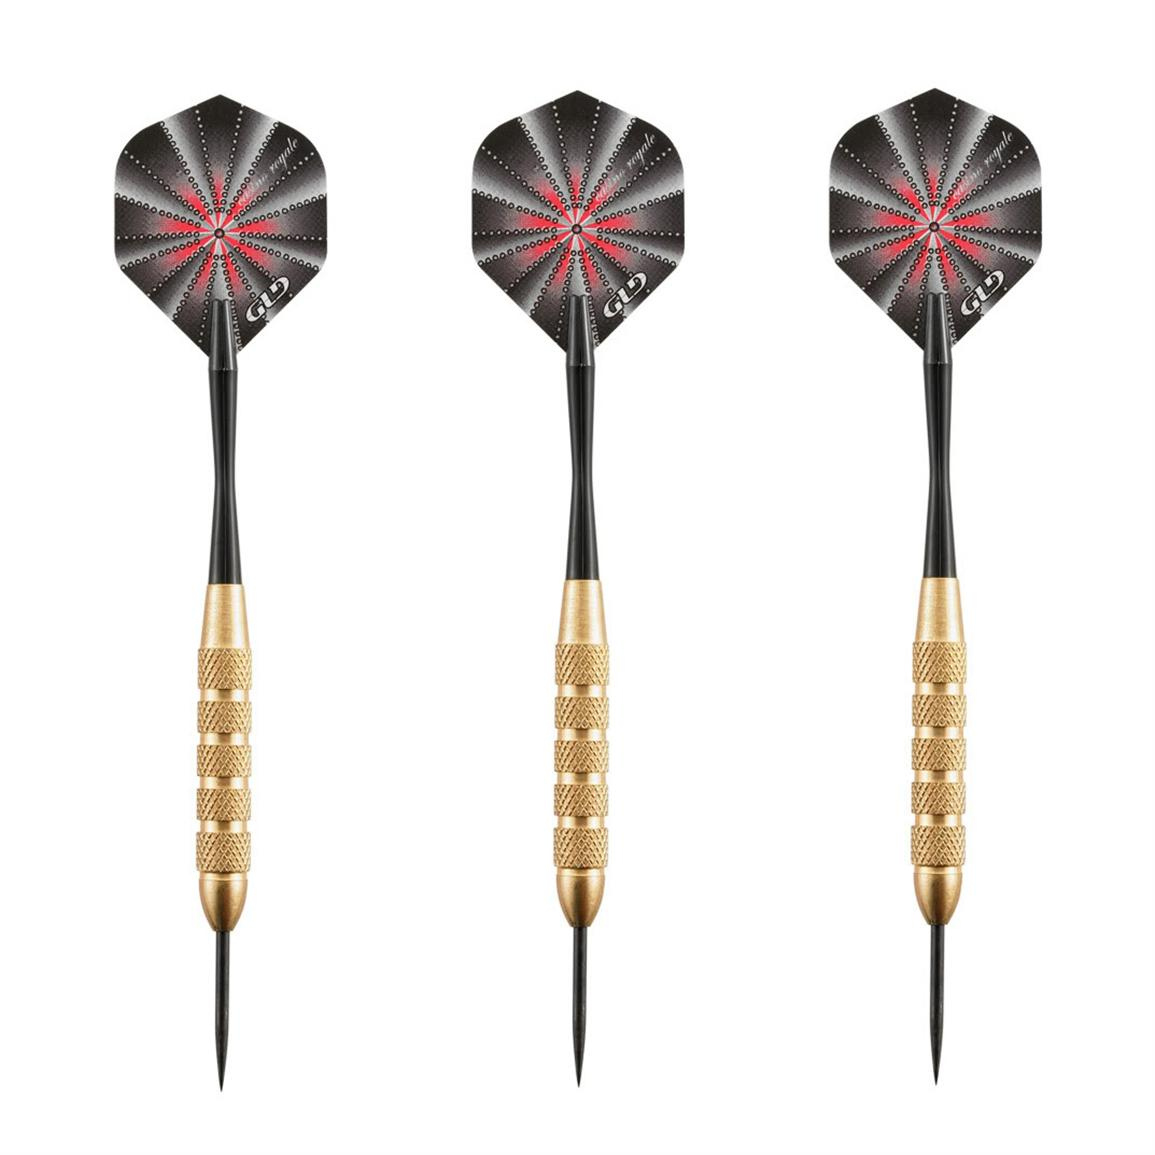 Viper® Casino Royale Steel-Tip Darts, 3-Pk.